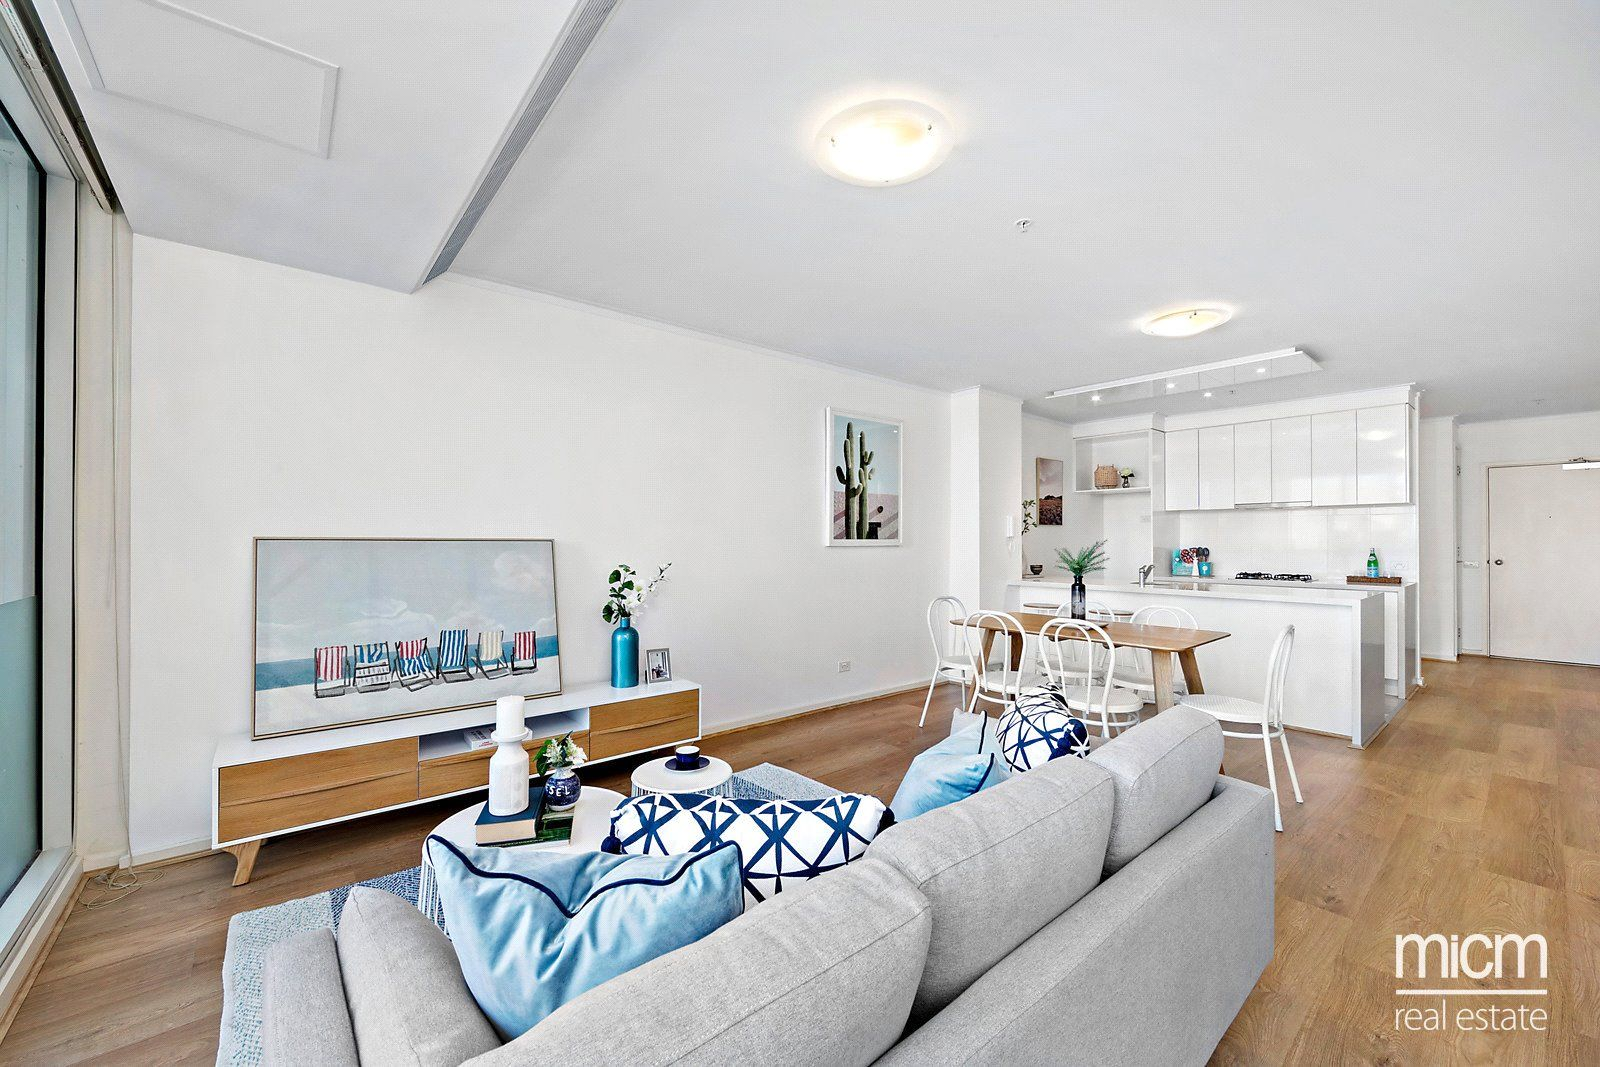 3 bedrooms Apartment / Unit / Flat in 903/63 Whiteman Street SOUTHBANK VIC, 3006